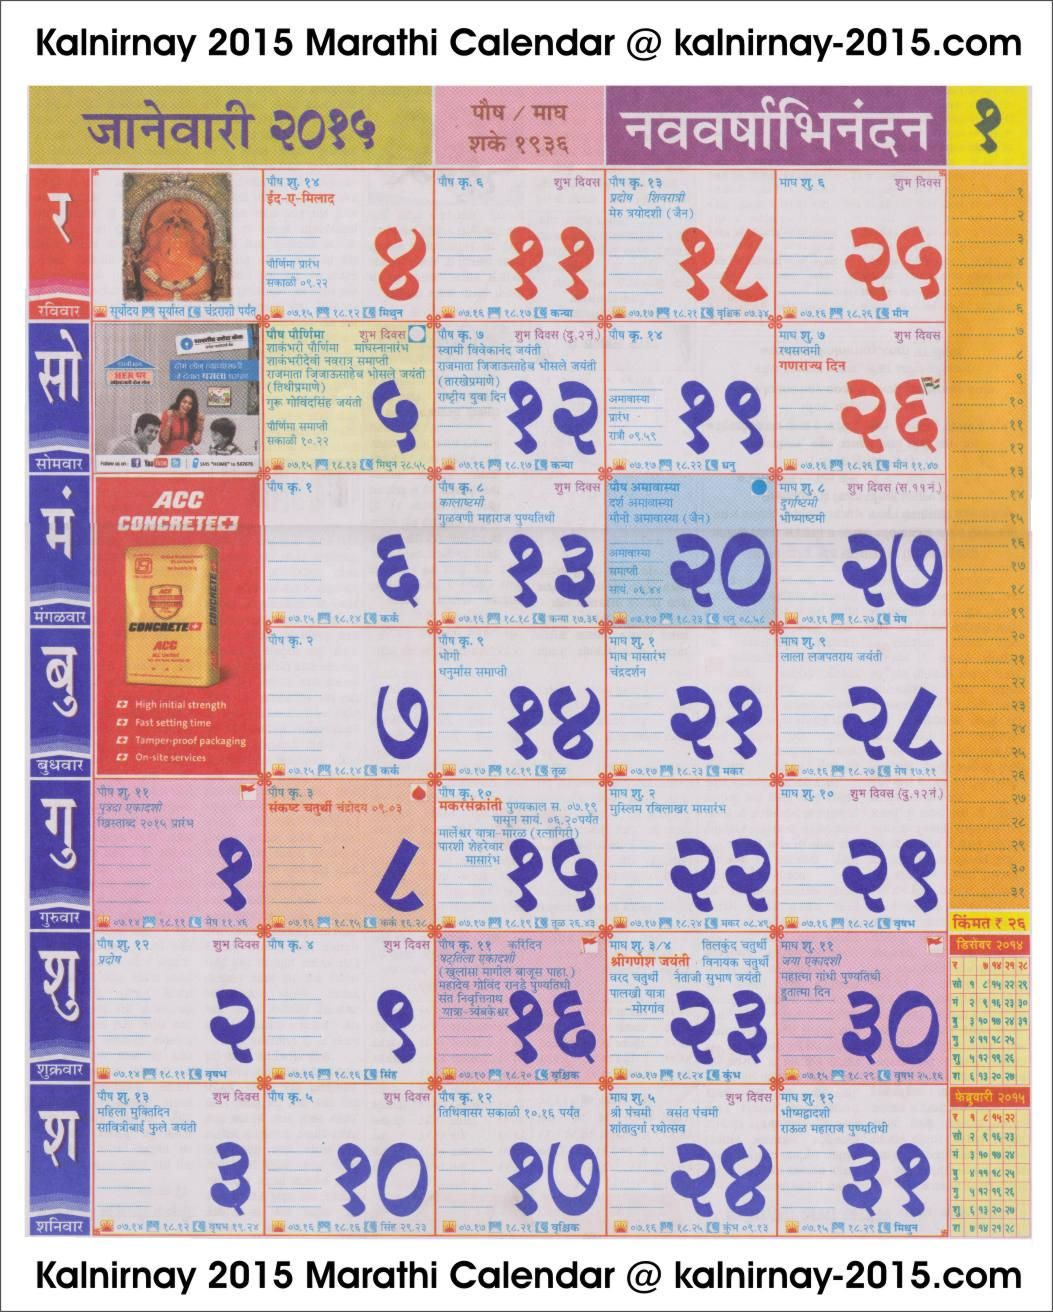 january 2015 marathi kalnirnay calendar calendars 2016 2016 calendar january calendar february 2015